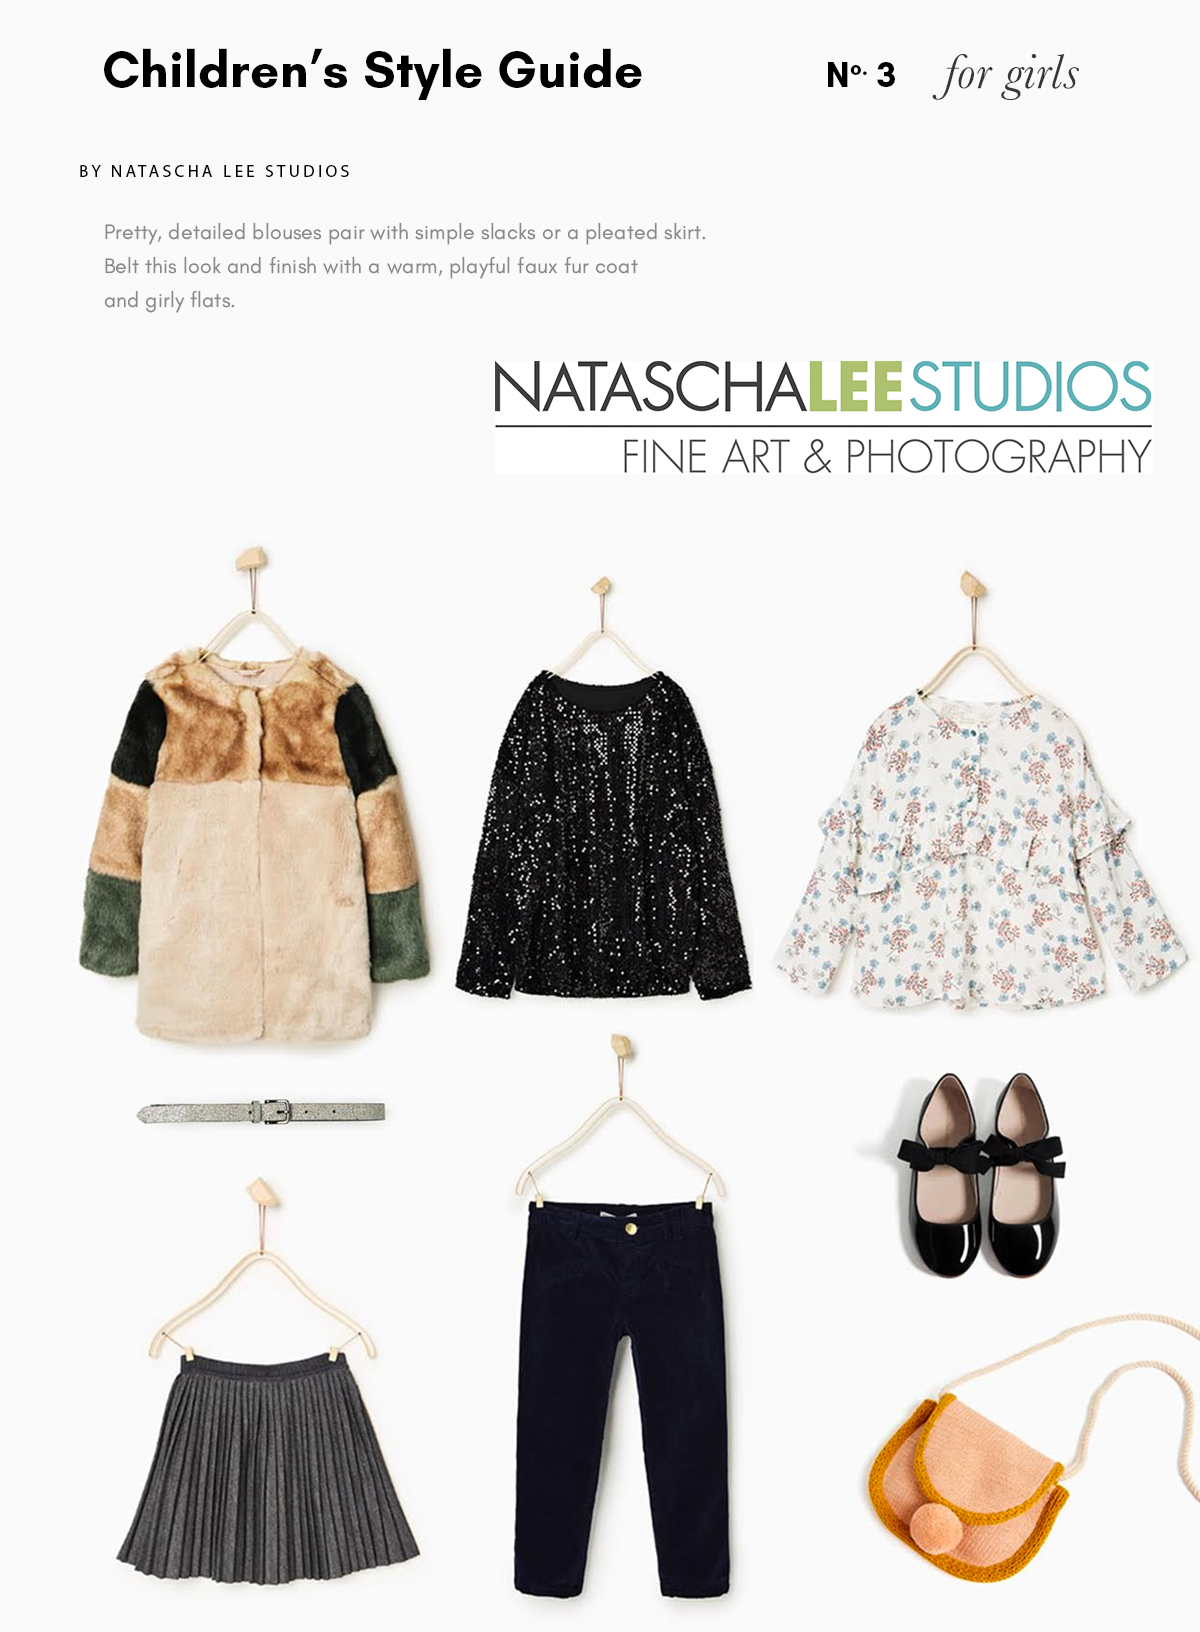 Children's Photography Style Guide - #3 for Girls